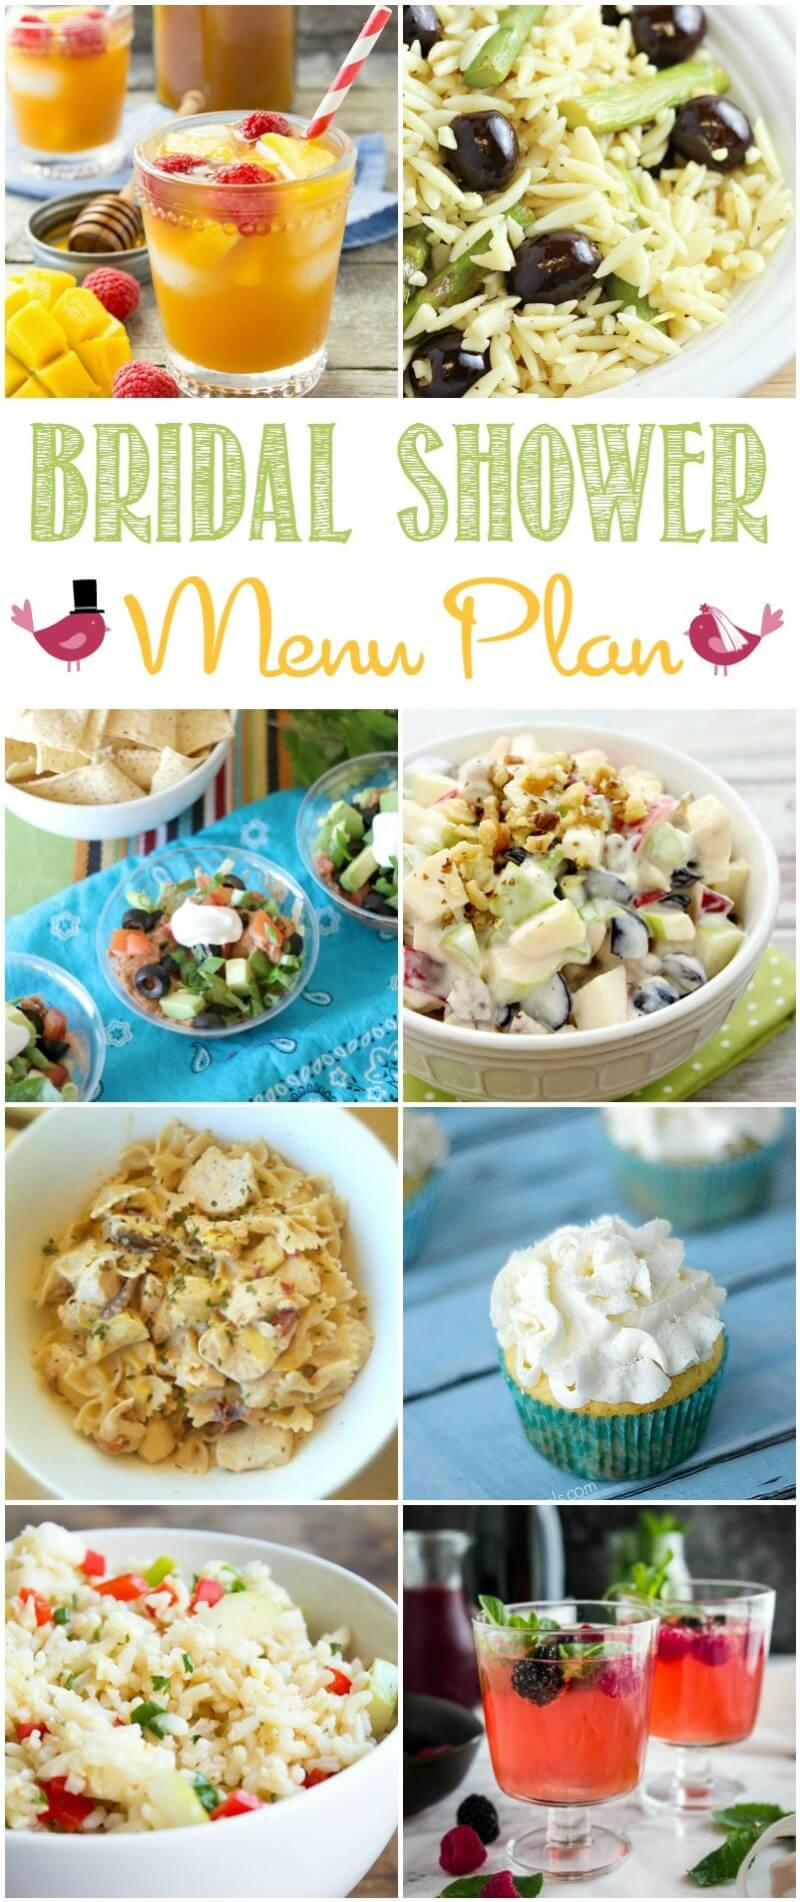 This Bridal Shower Menu Plan make it so easy to plan a perfect party!